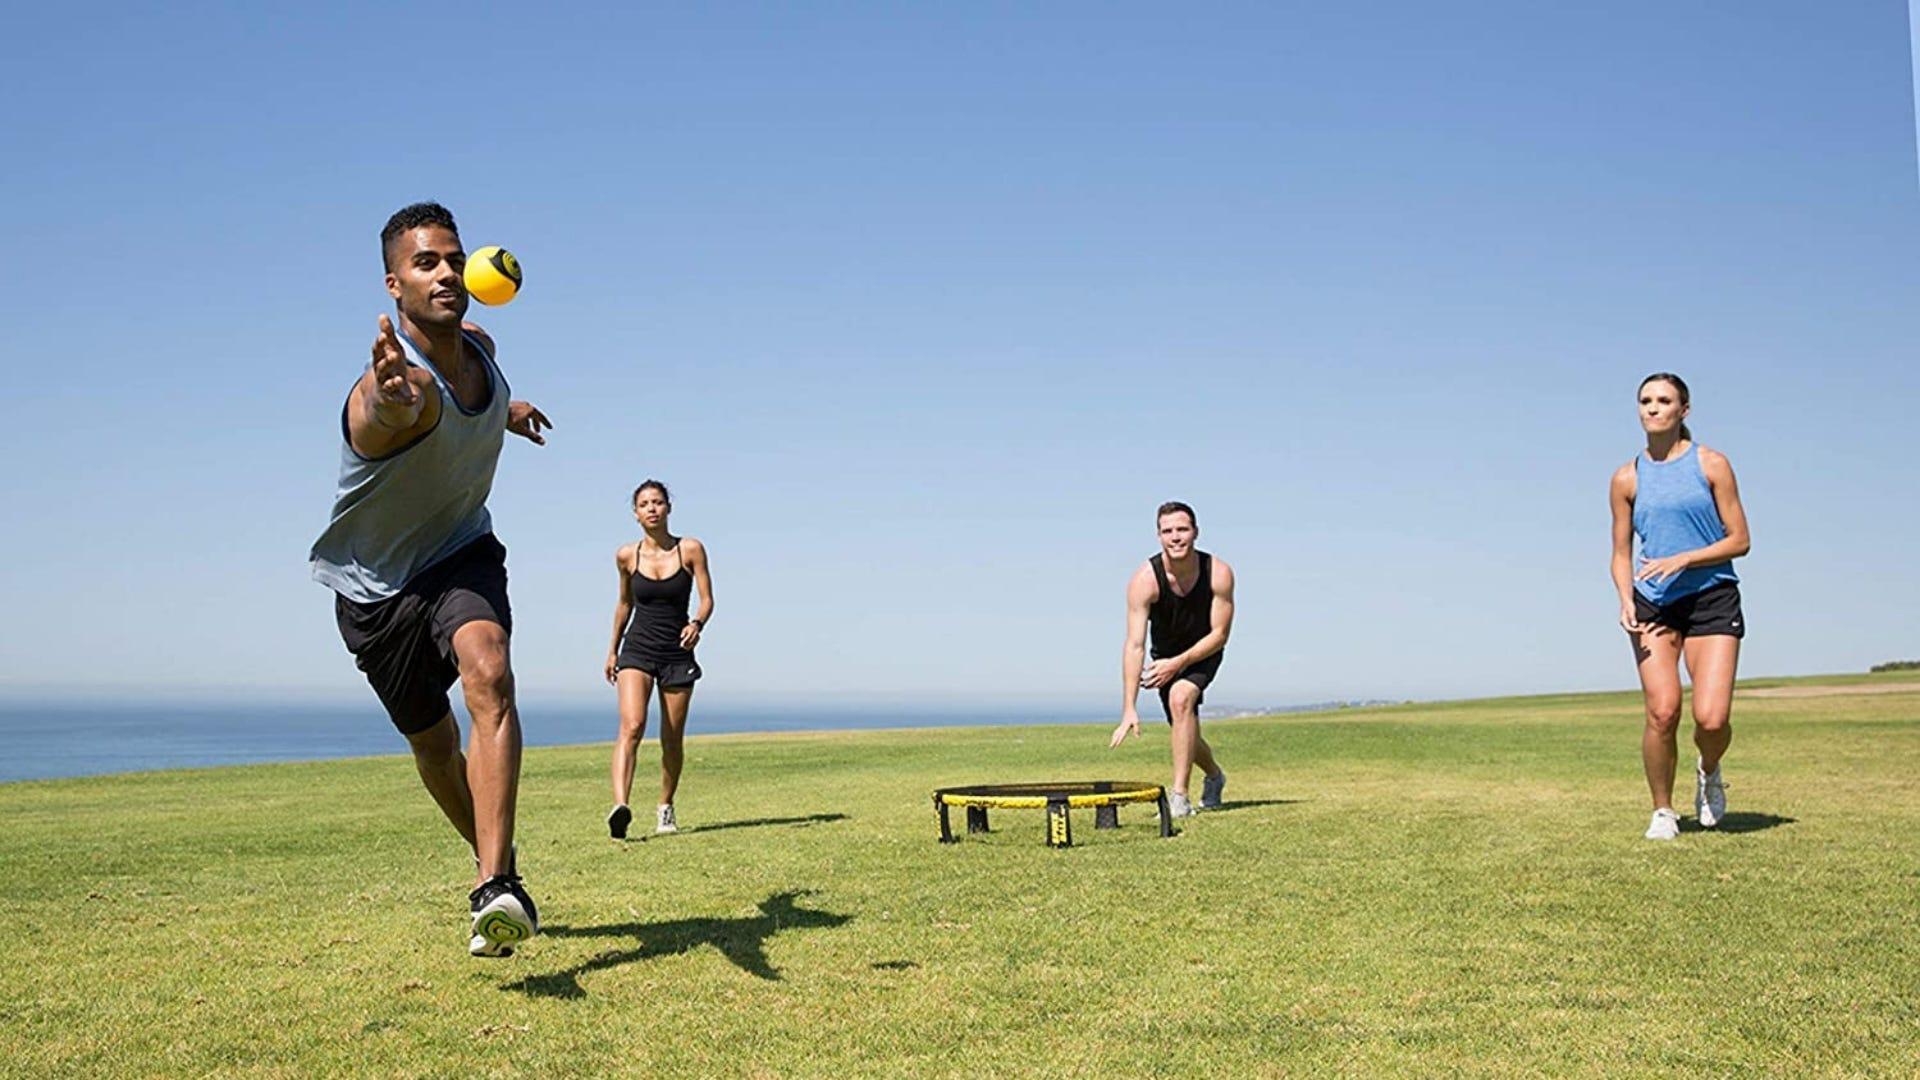 Four people playing Spikeball outside.